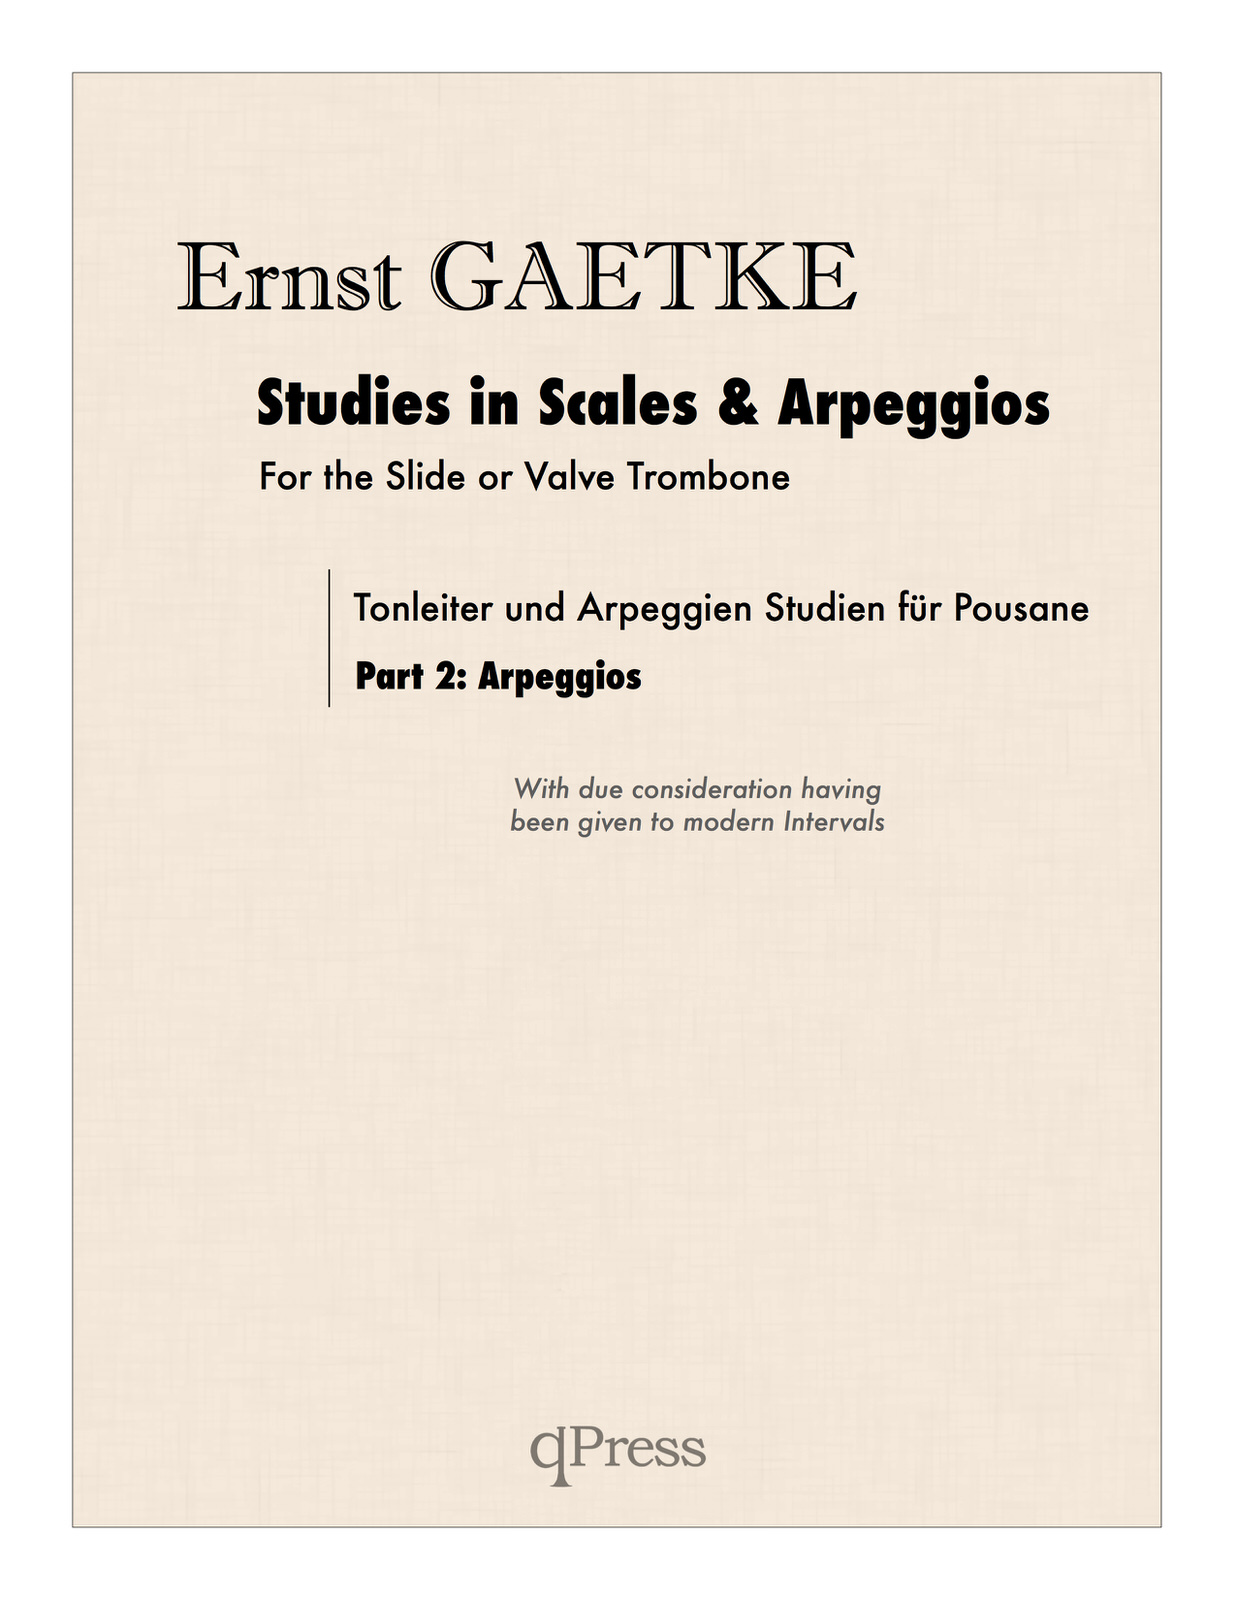 gaetke-studies-in-scales-and-arpeggios-for-trombone-part-2-4